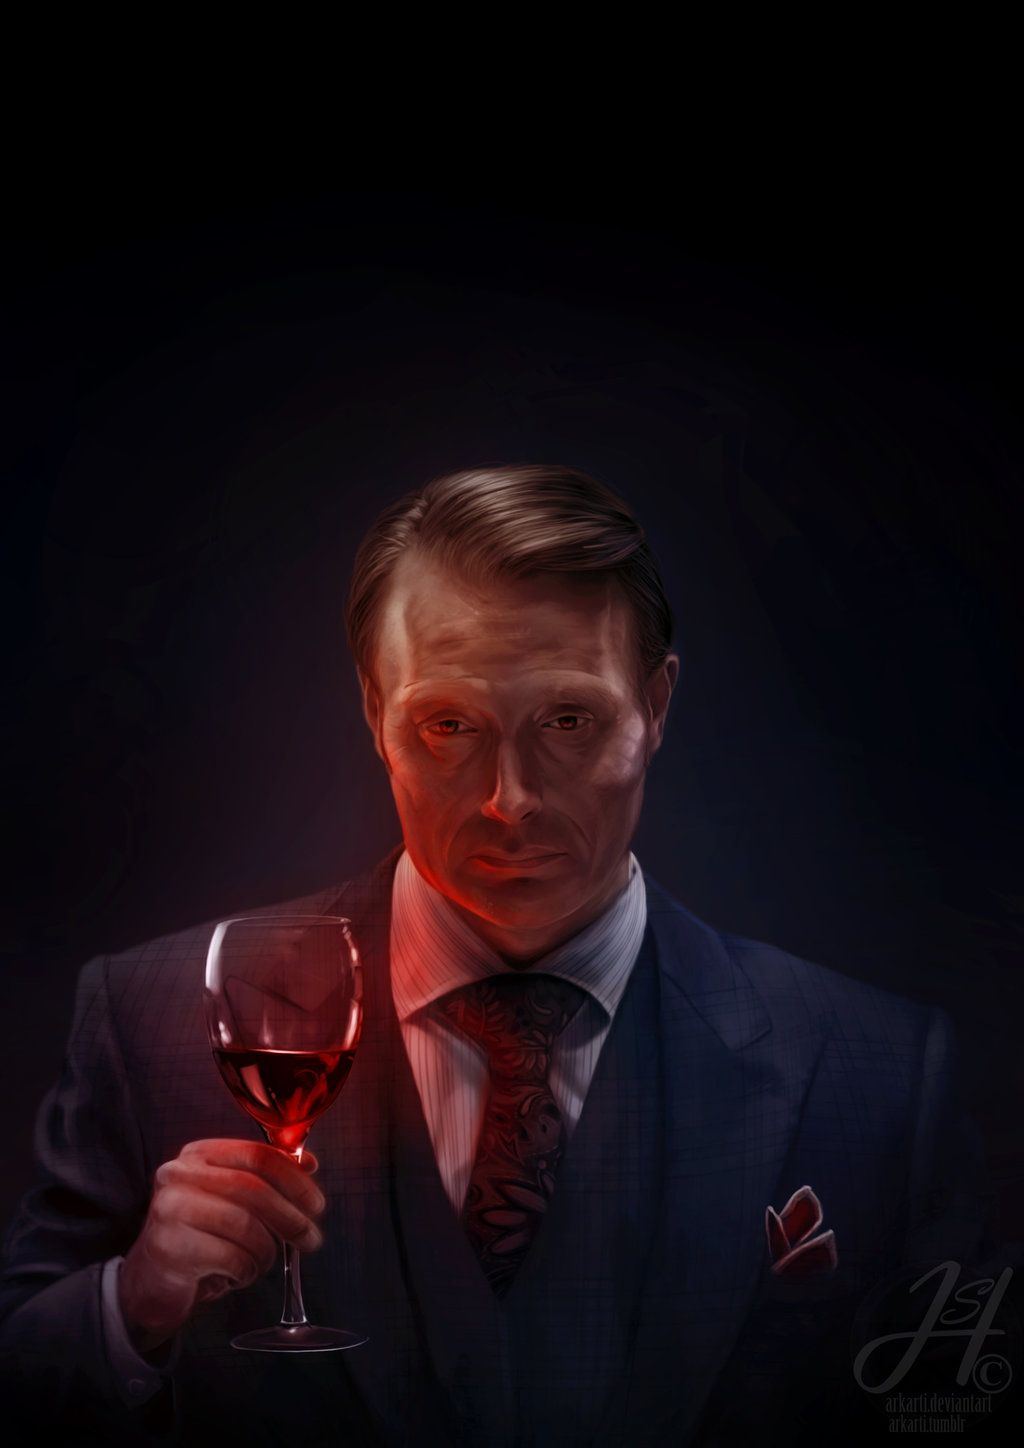 Red Wine Hannibal Lecter Hannibal Series Hannibal Episodes